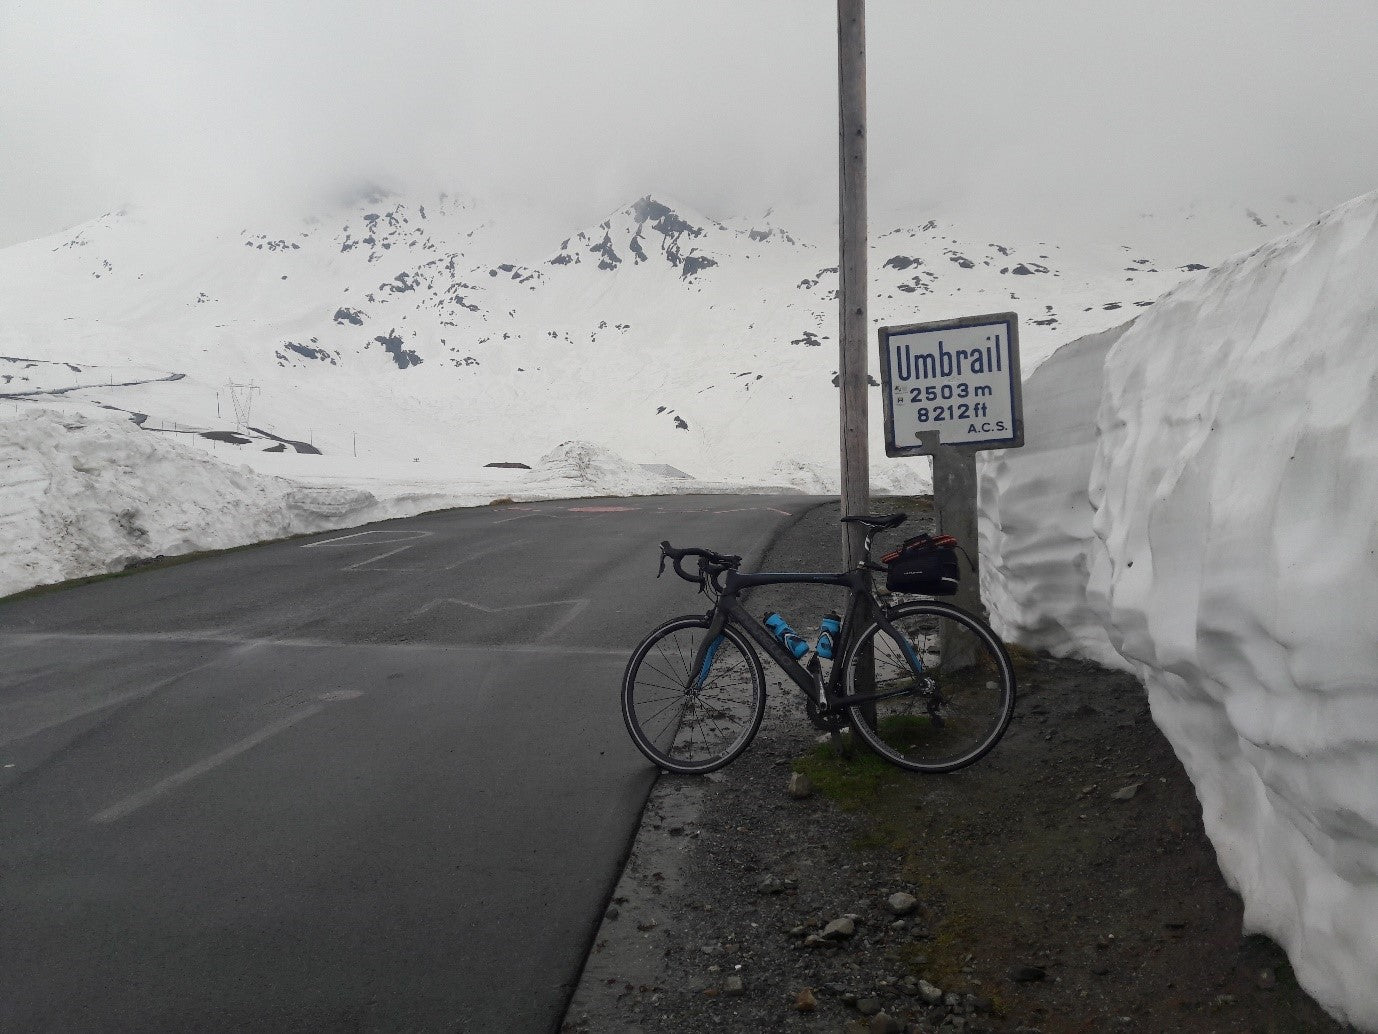 The top of the Umbrail pass. Note the road to the Stelvio summit on the left.